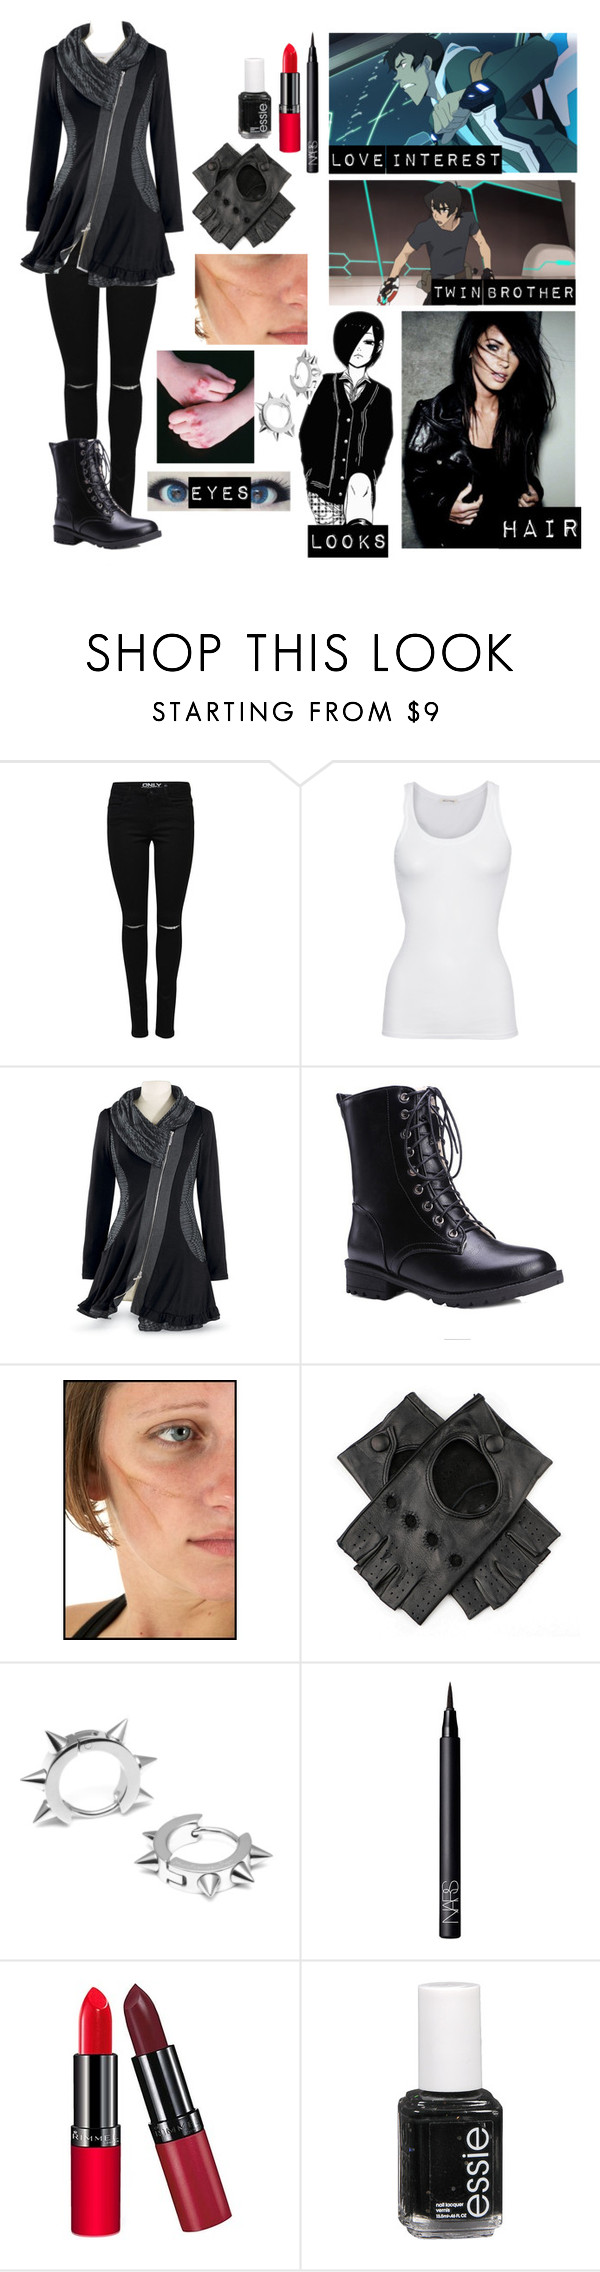 """""""Voltron oc 2"""" by gglloyd ❤ liked on Polyvore featuring American Vintage, Black, Maria Francesca Pepe, NARS Cosmetics, Rimmel and Essie"""